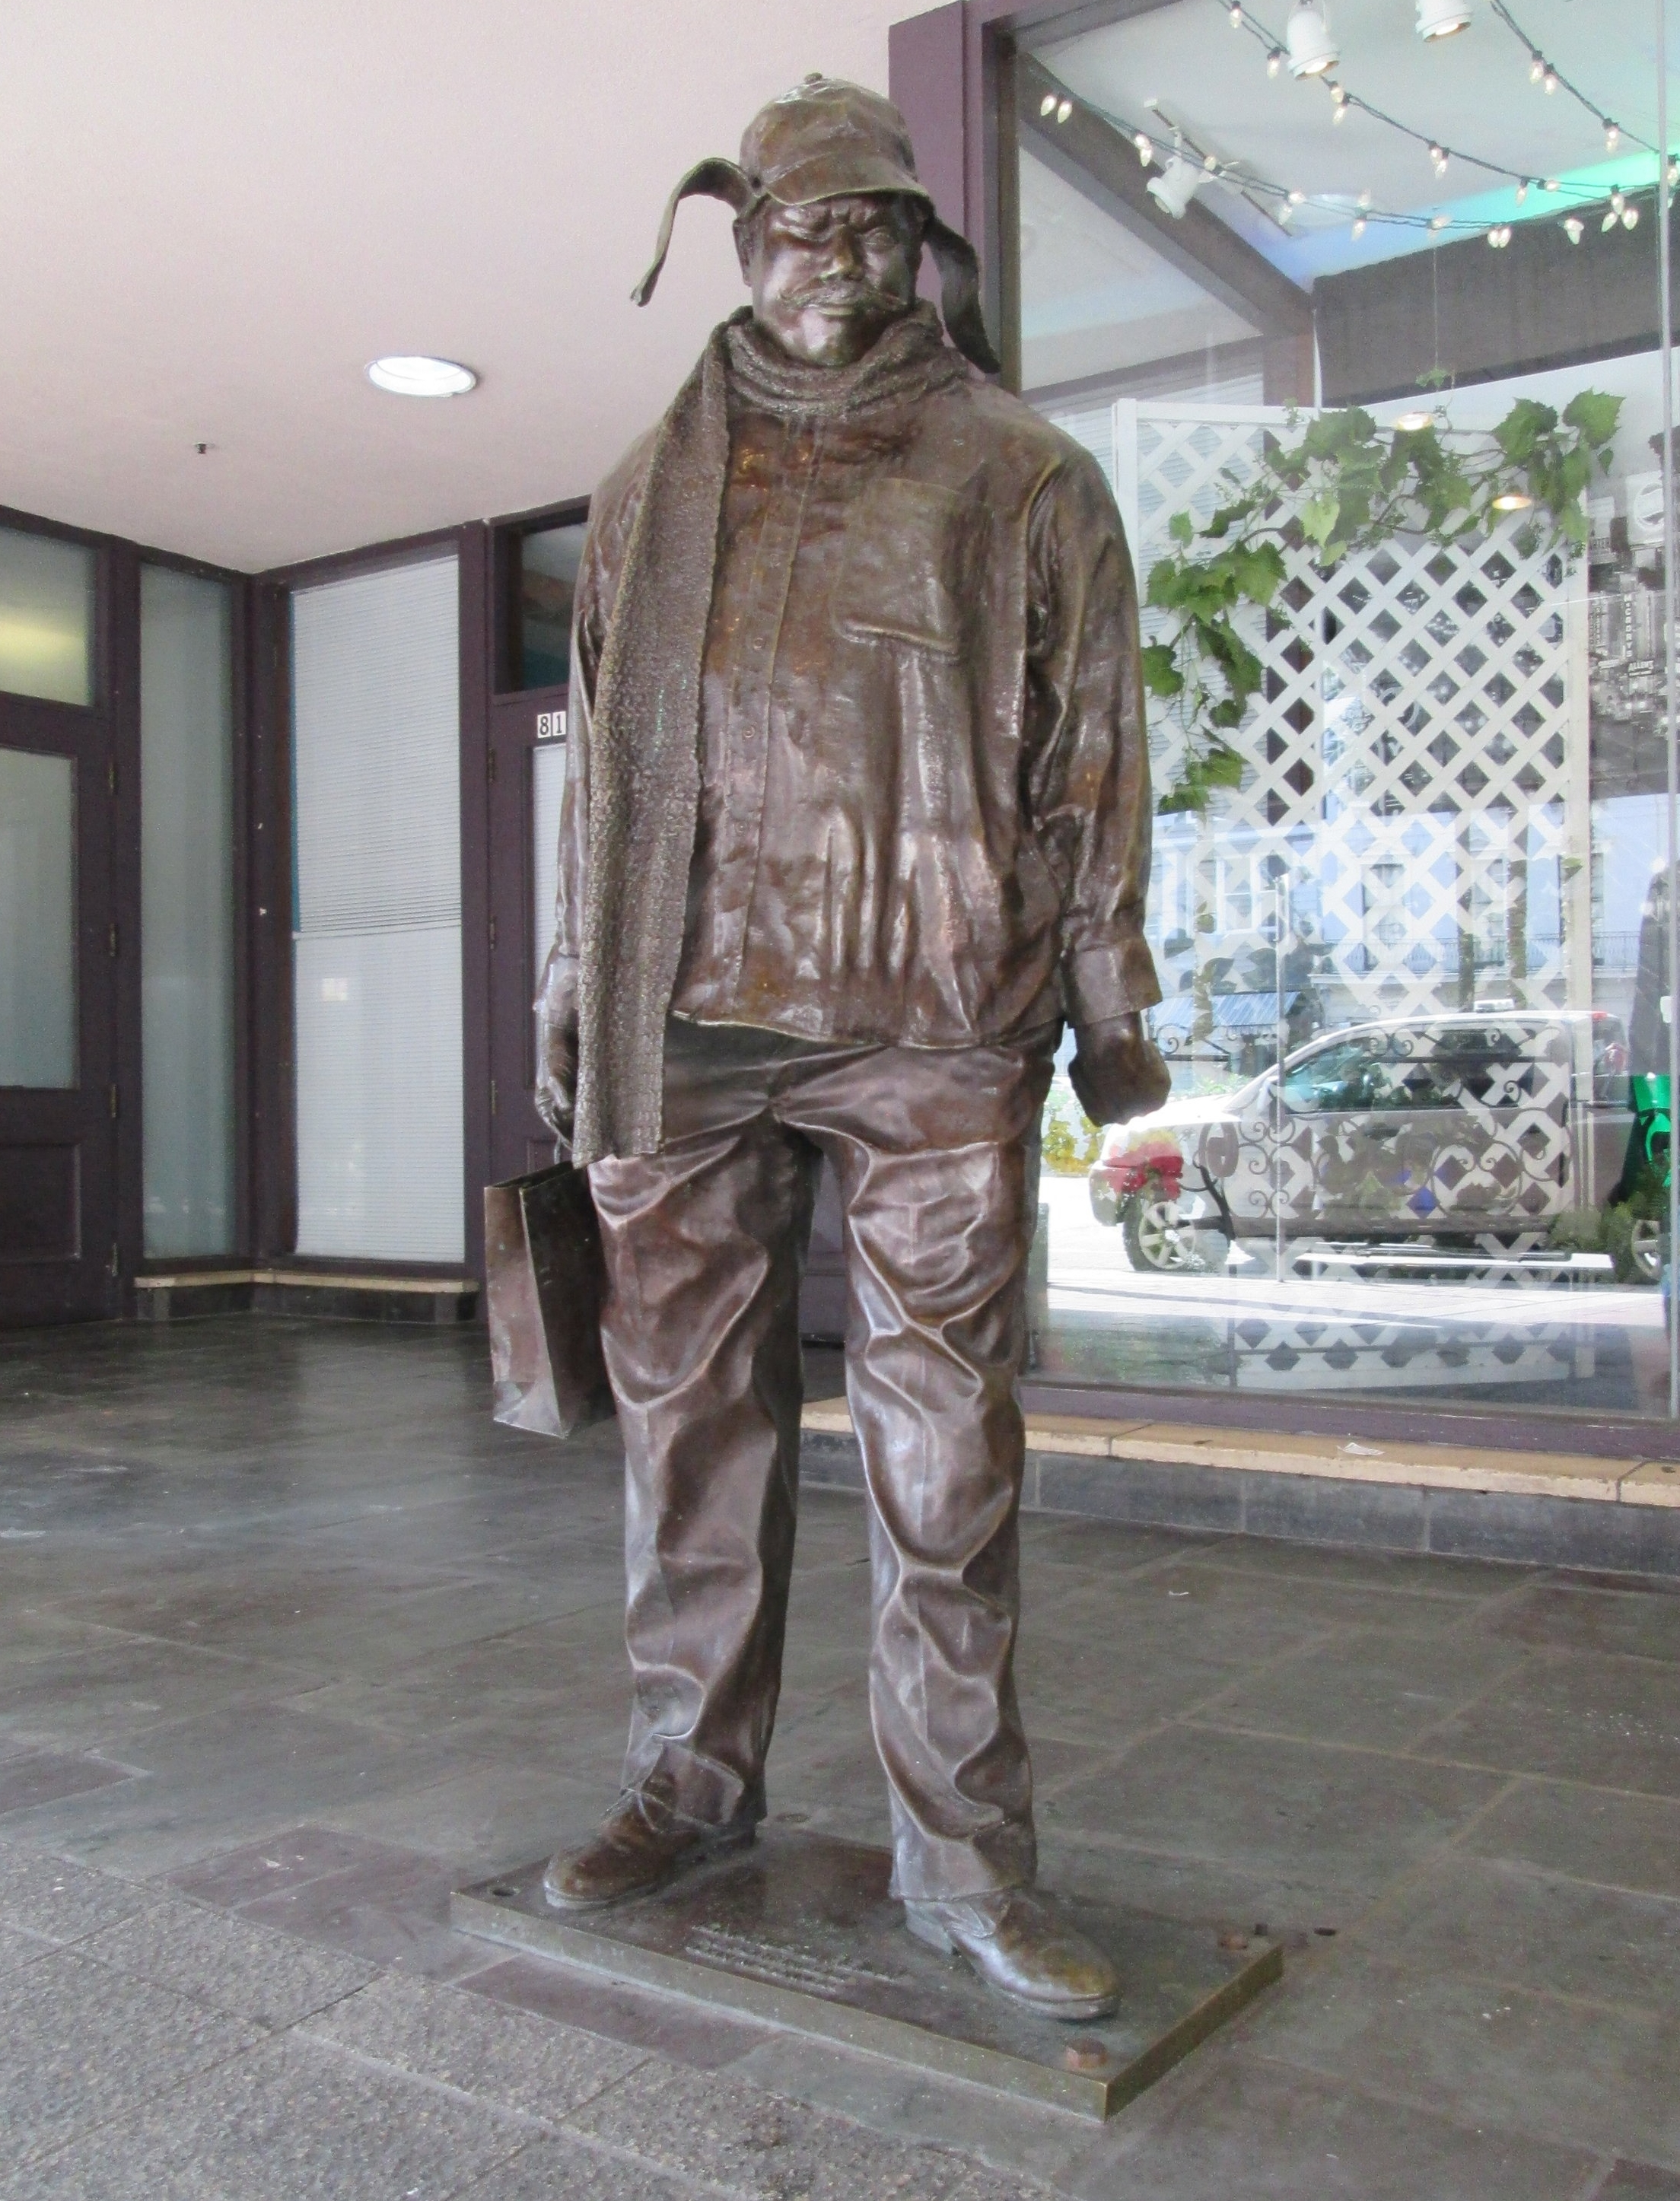 Statue of Ignatius J. Reilly in front of the Hyatt Centric on Canal Street